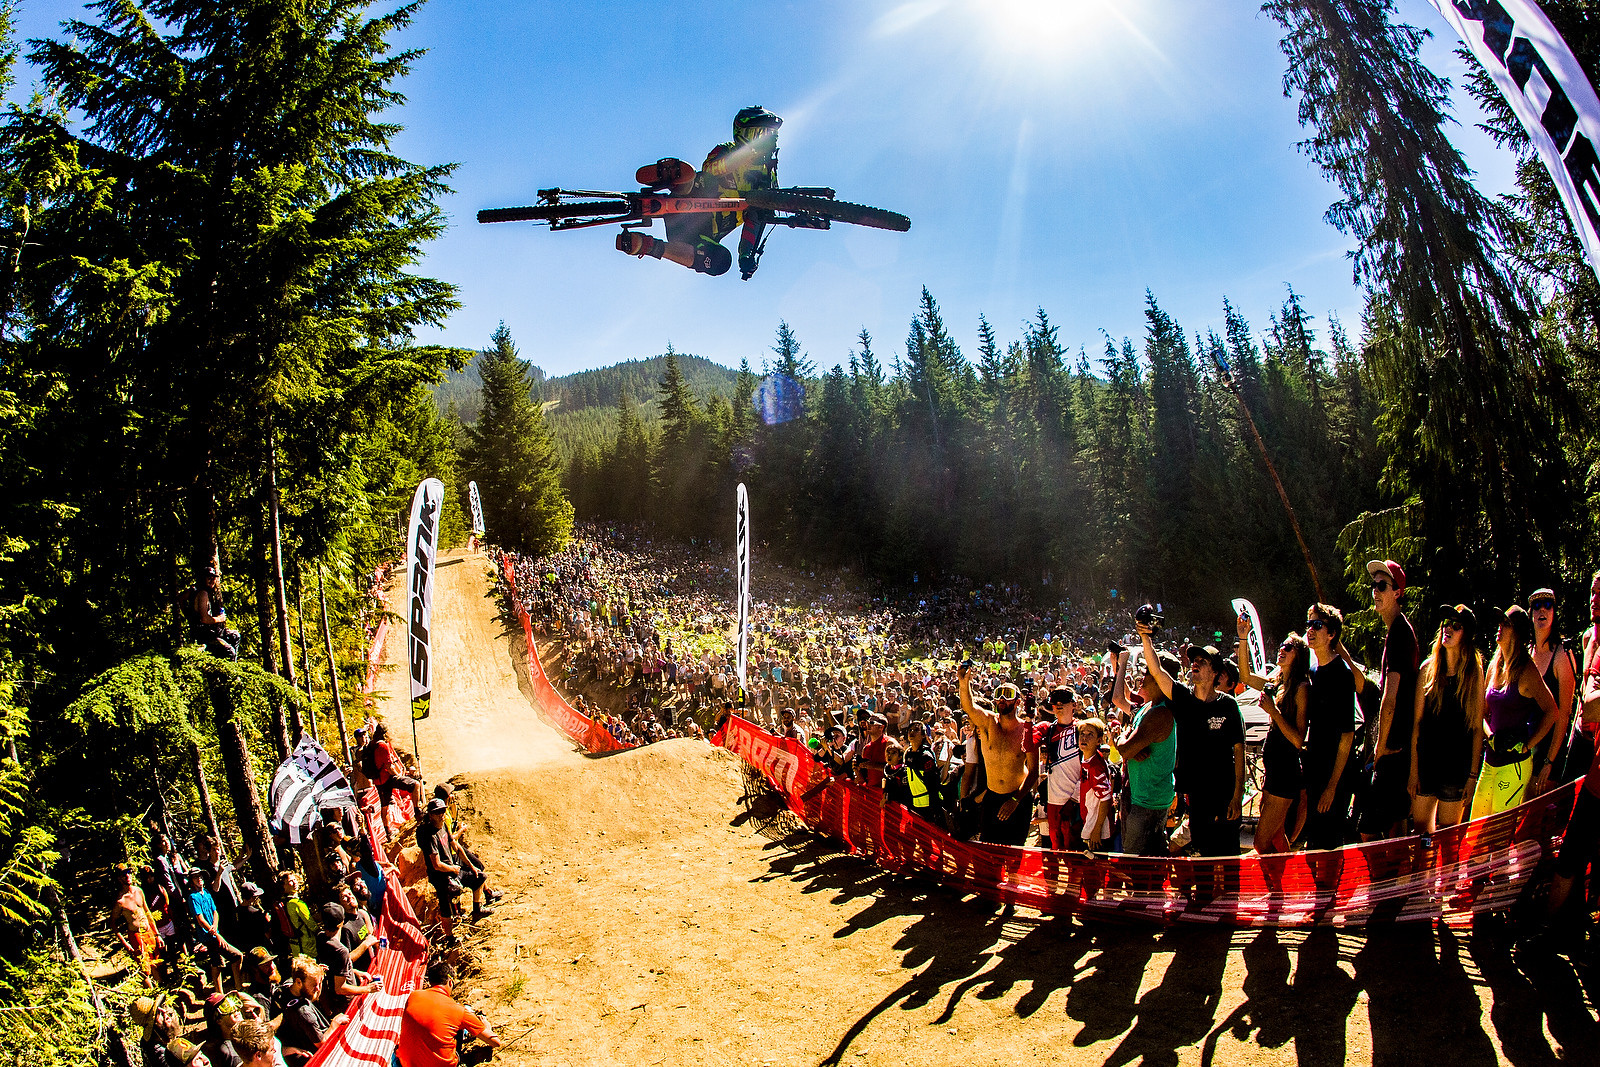 Sam Reynolds - Whip Off World Champs Photo Blast - Mountain Biking Pictures - Vital MTB